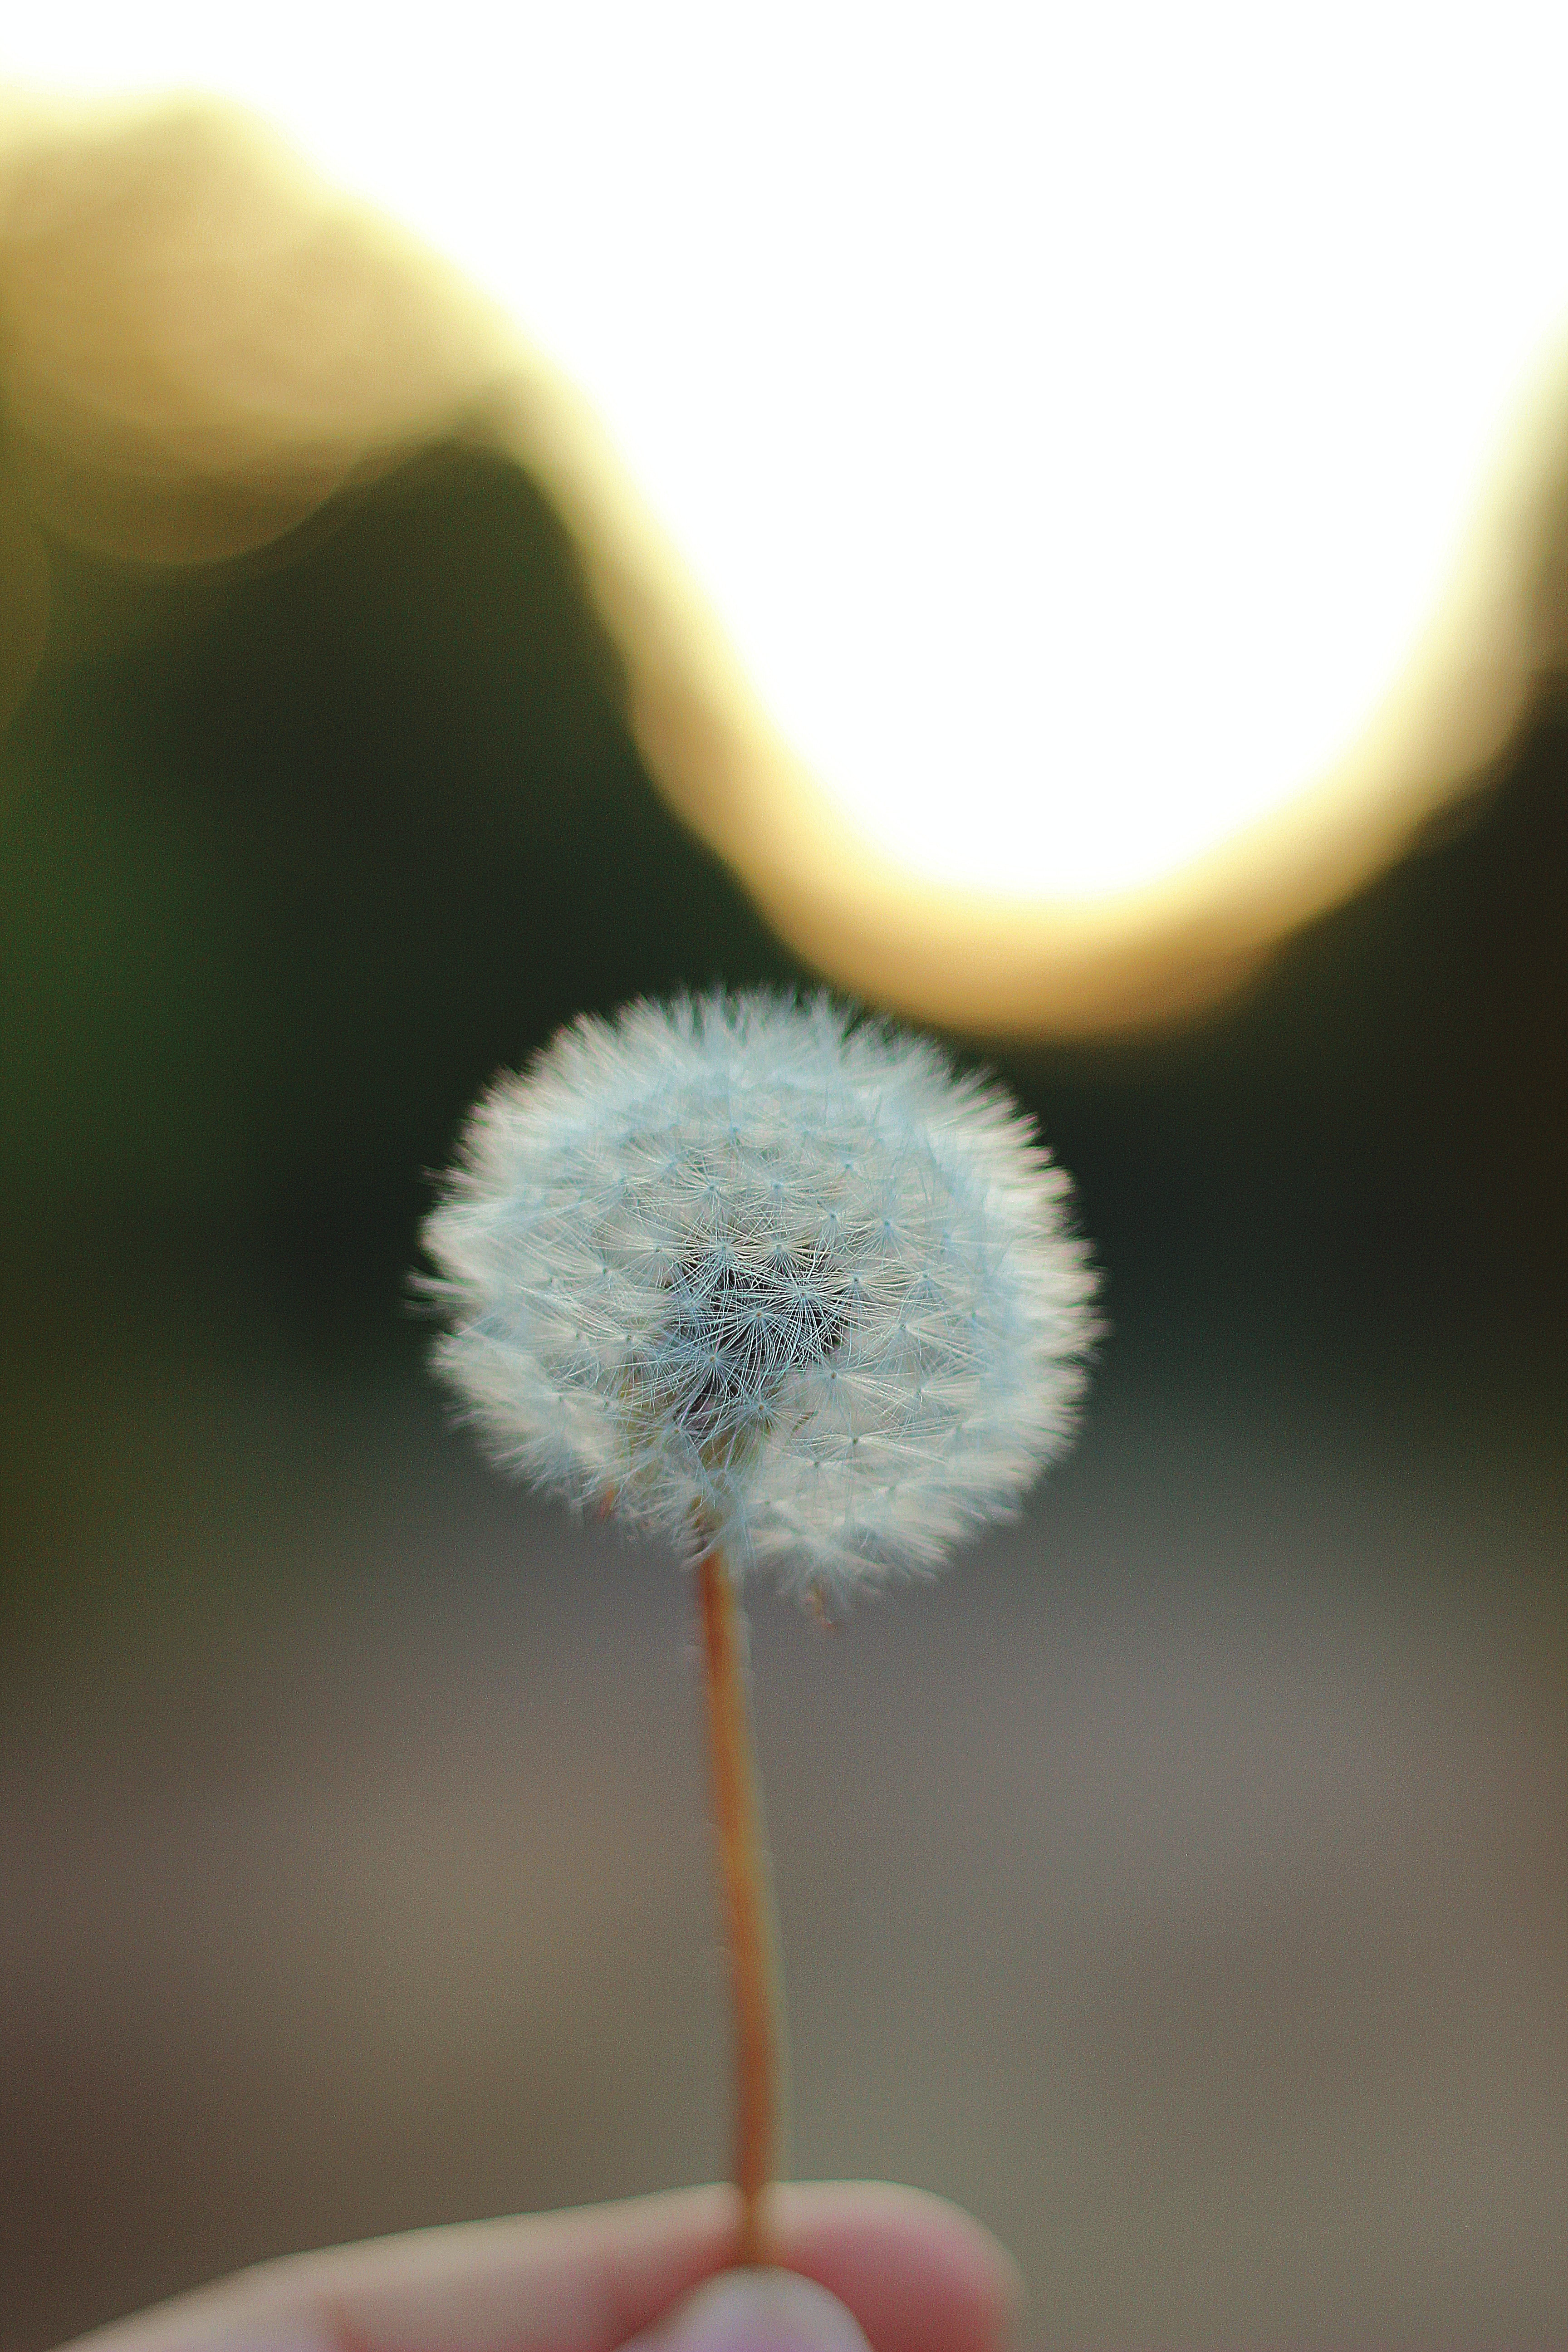 A person holding a dandelion in their hand